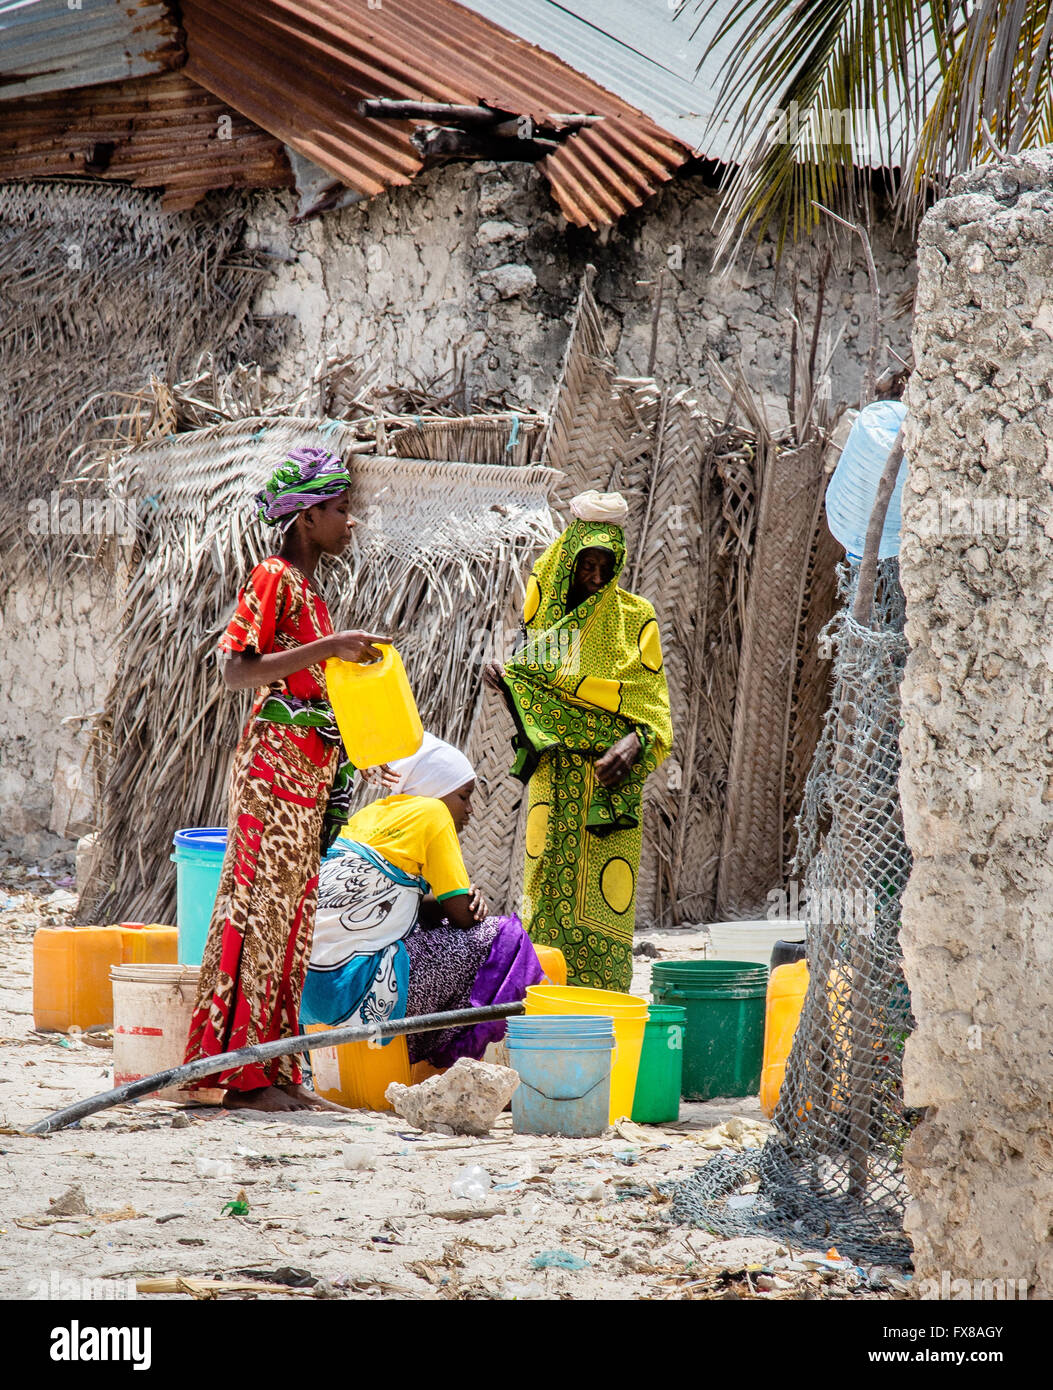 Brightly clothed women collect water in plastic containers from a communal tap in a Tanzanian village on Zanzibar - Stock Image